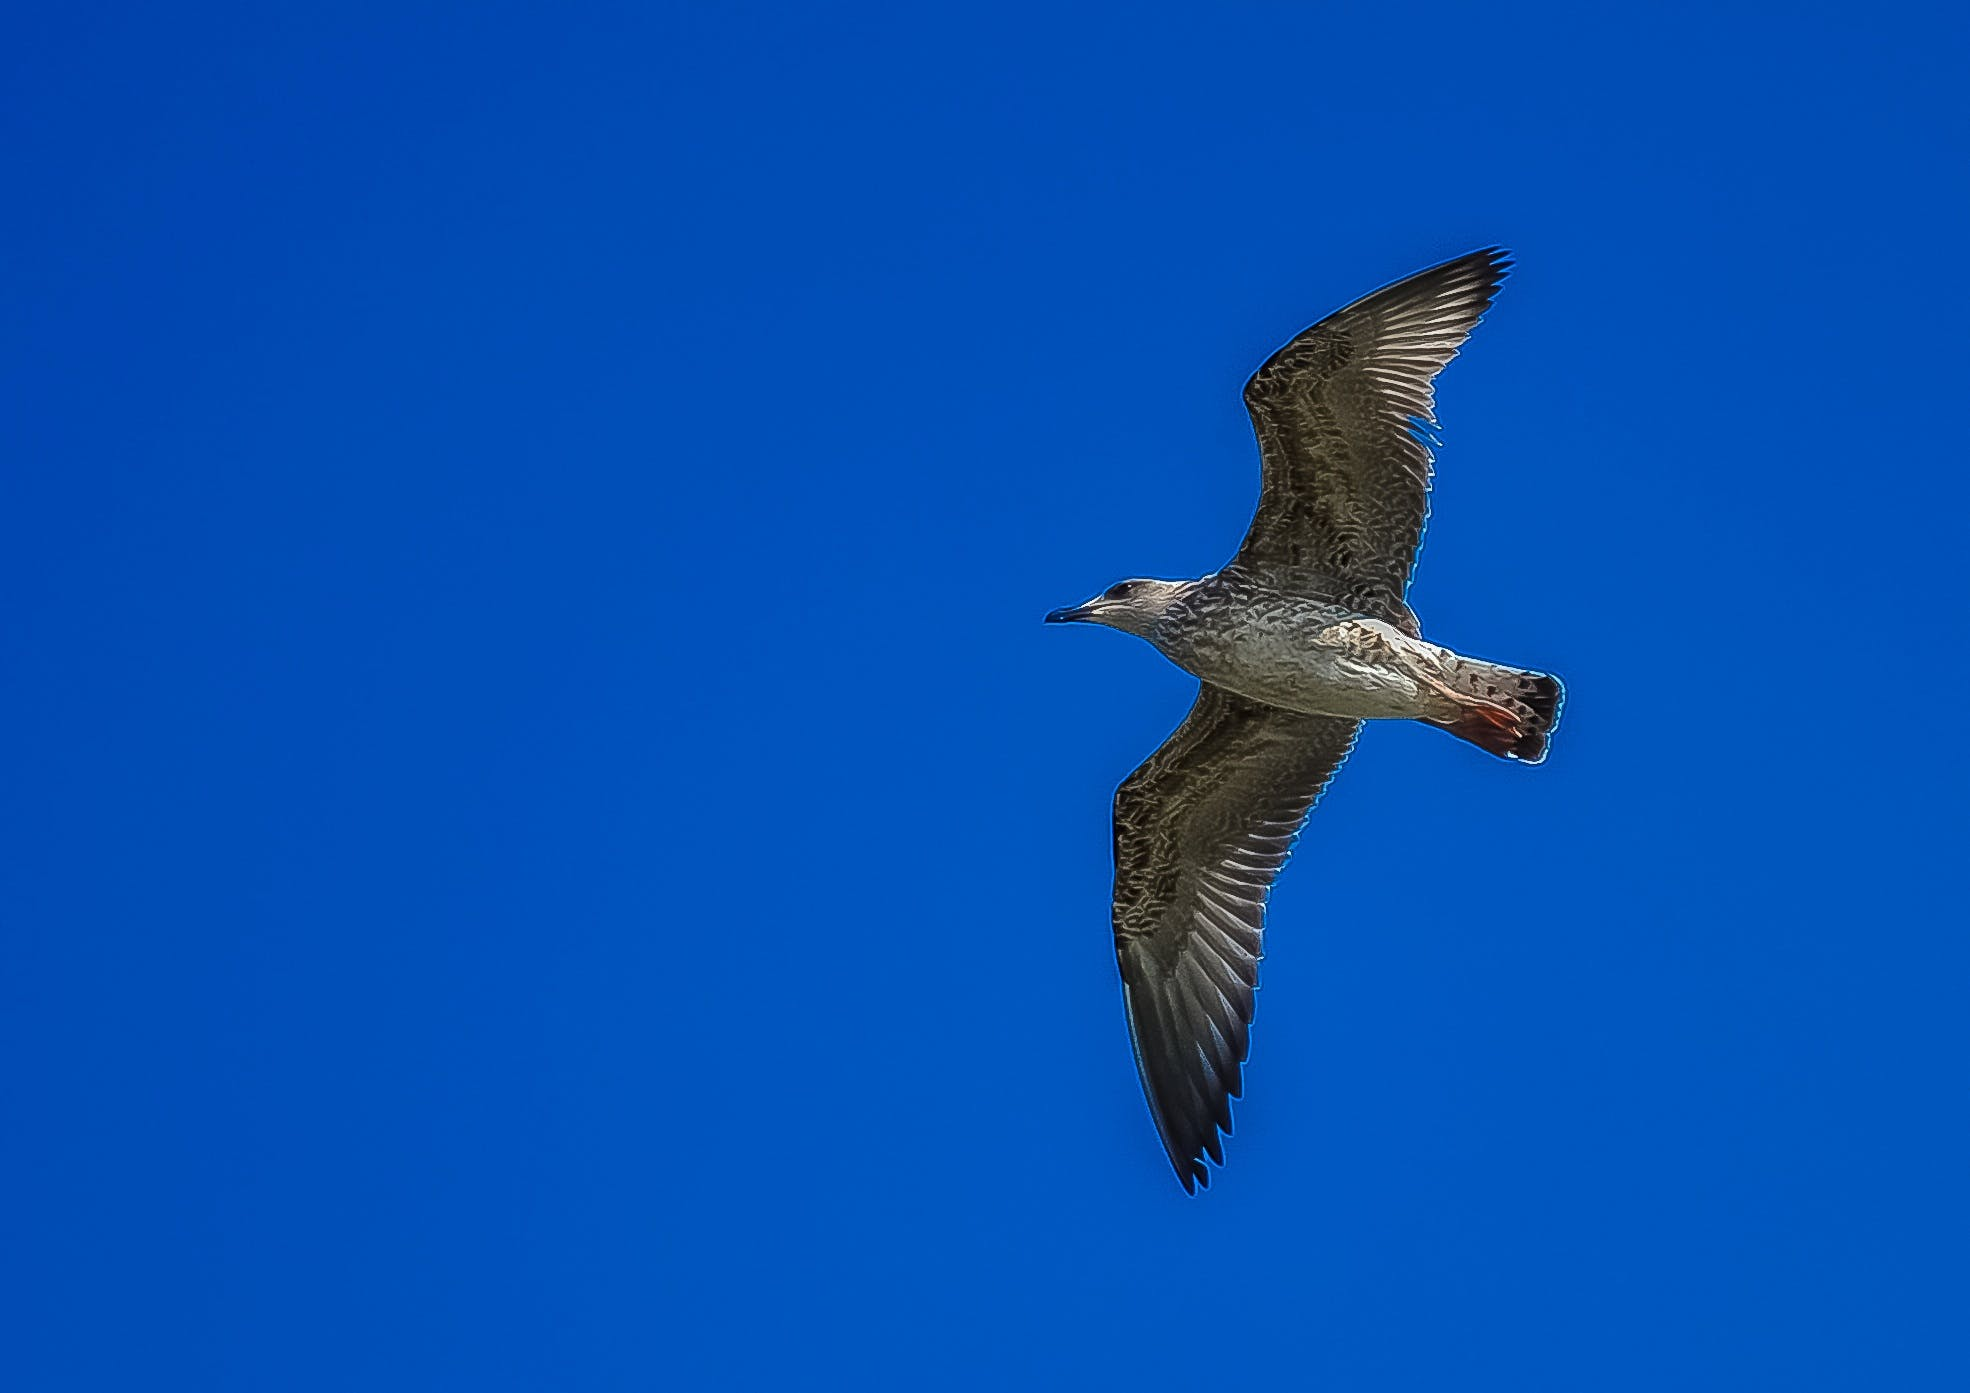 White and Grey Bird Flying during Day Time